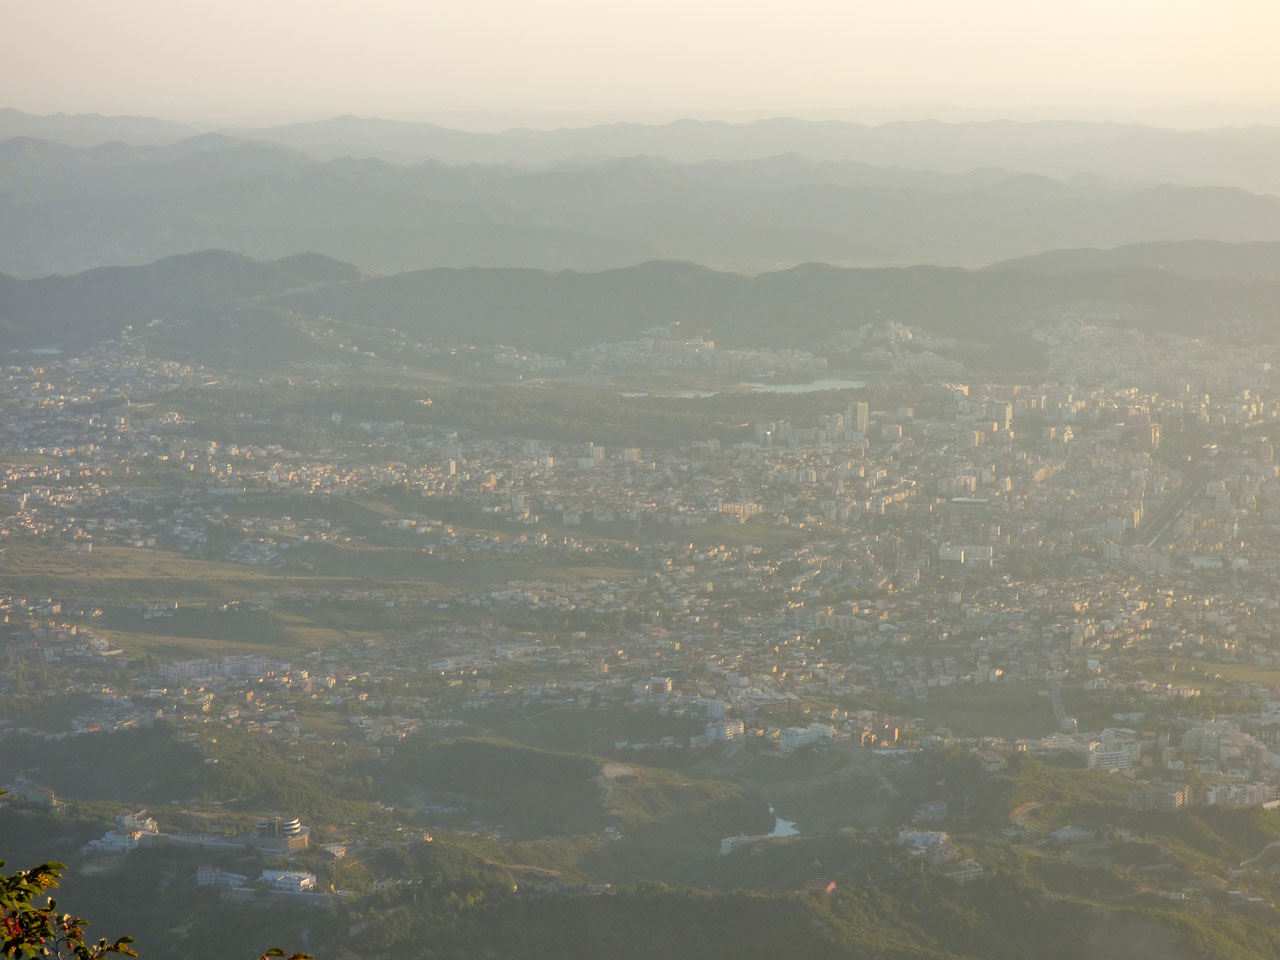 View of Tirana from Mount Dajti, Albania